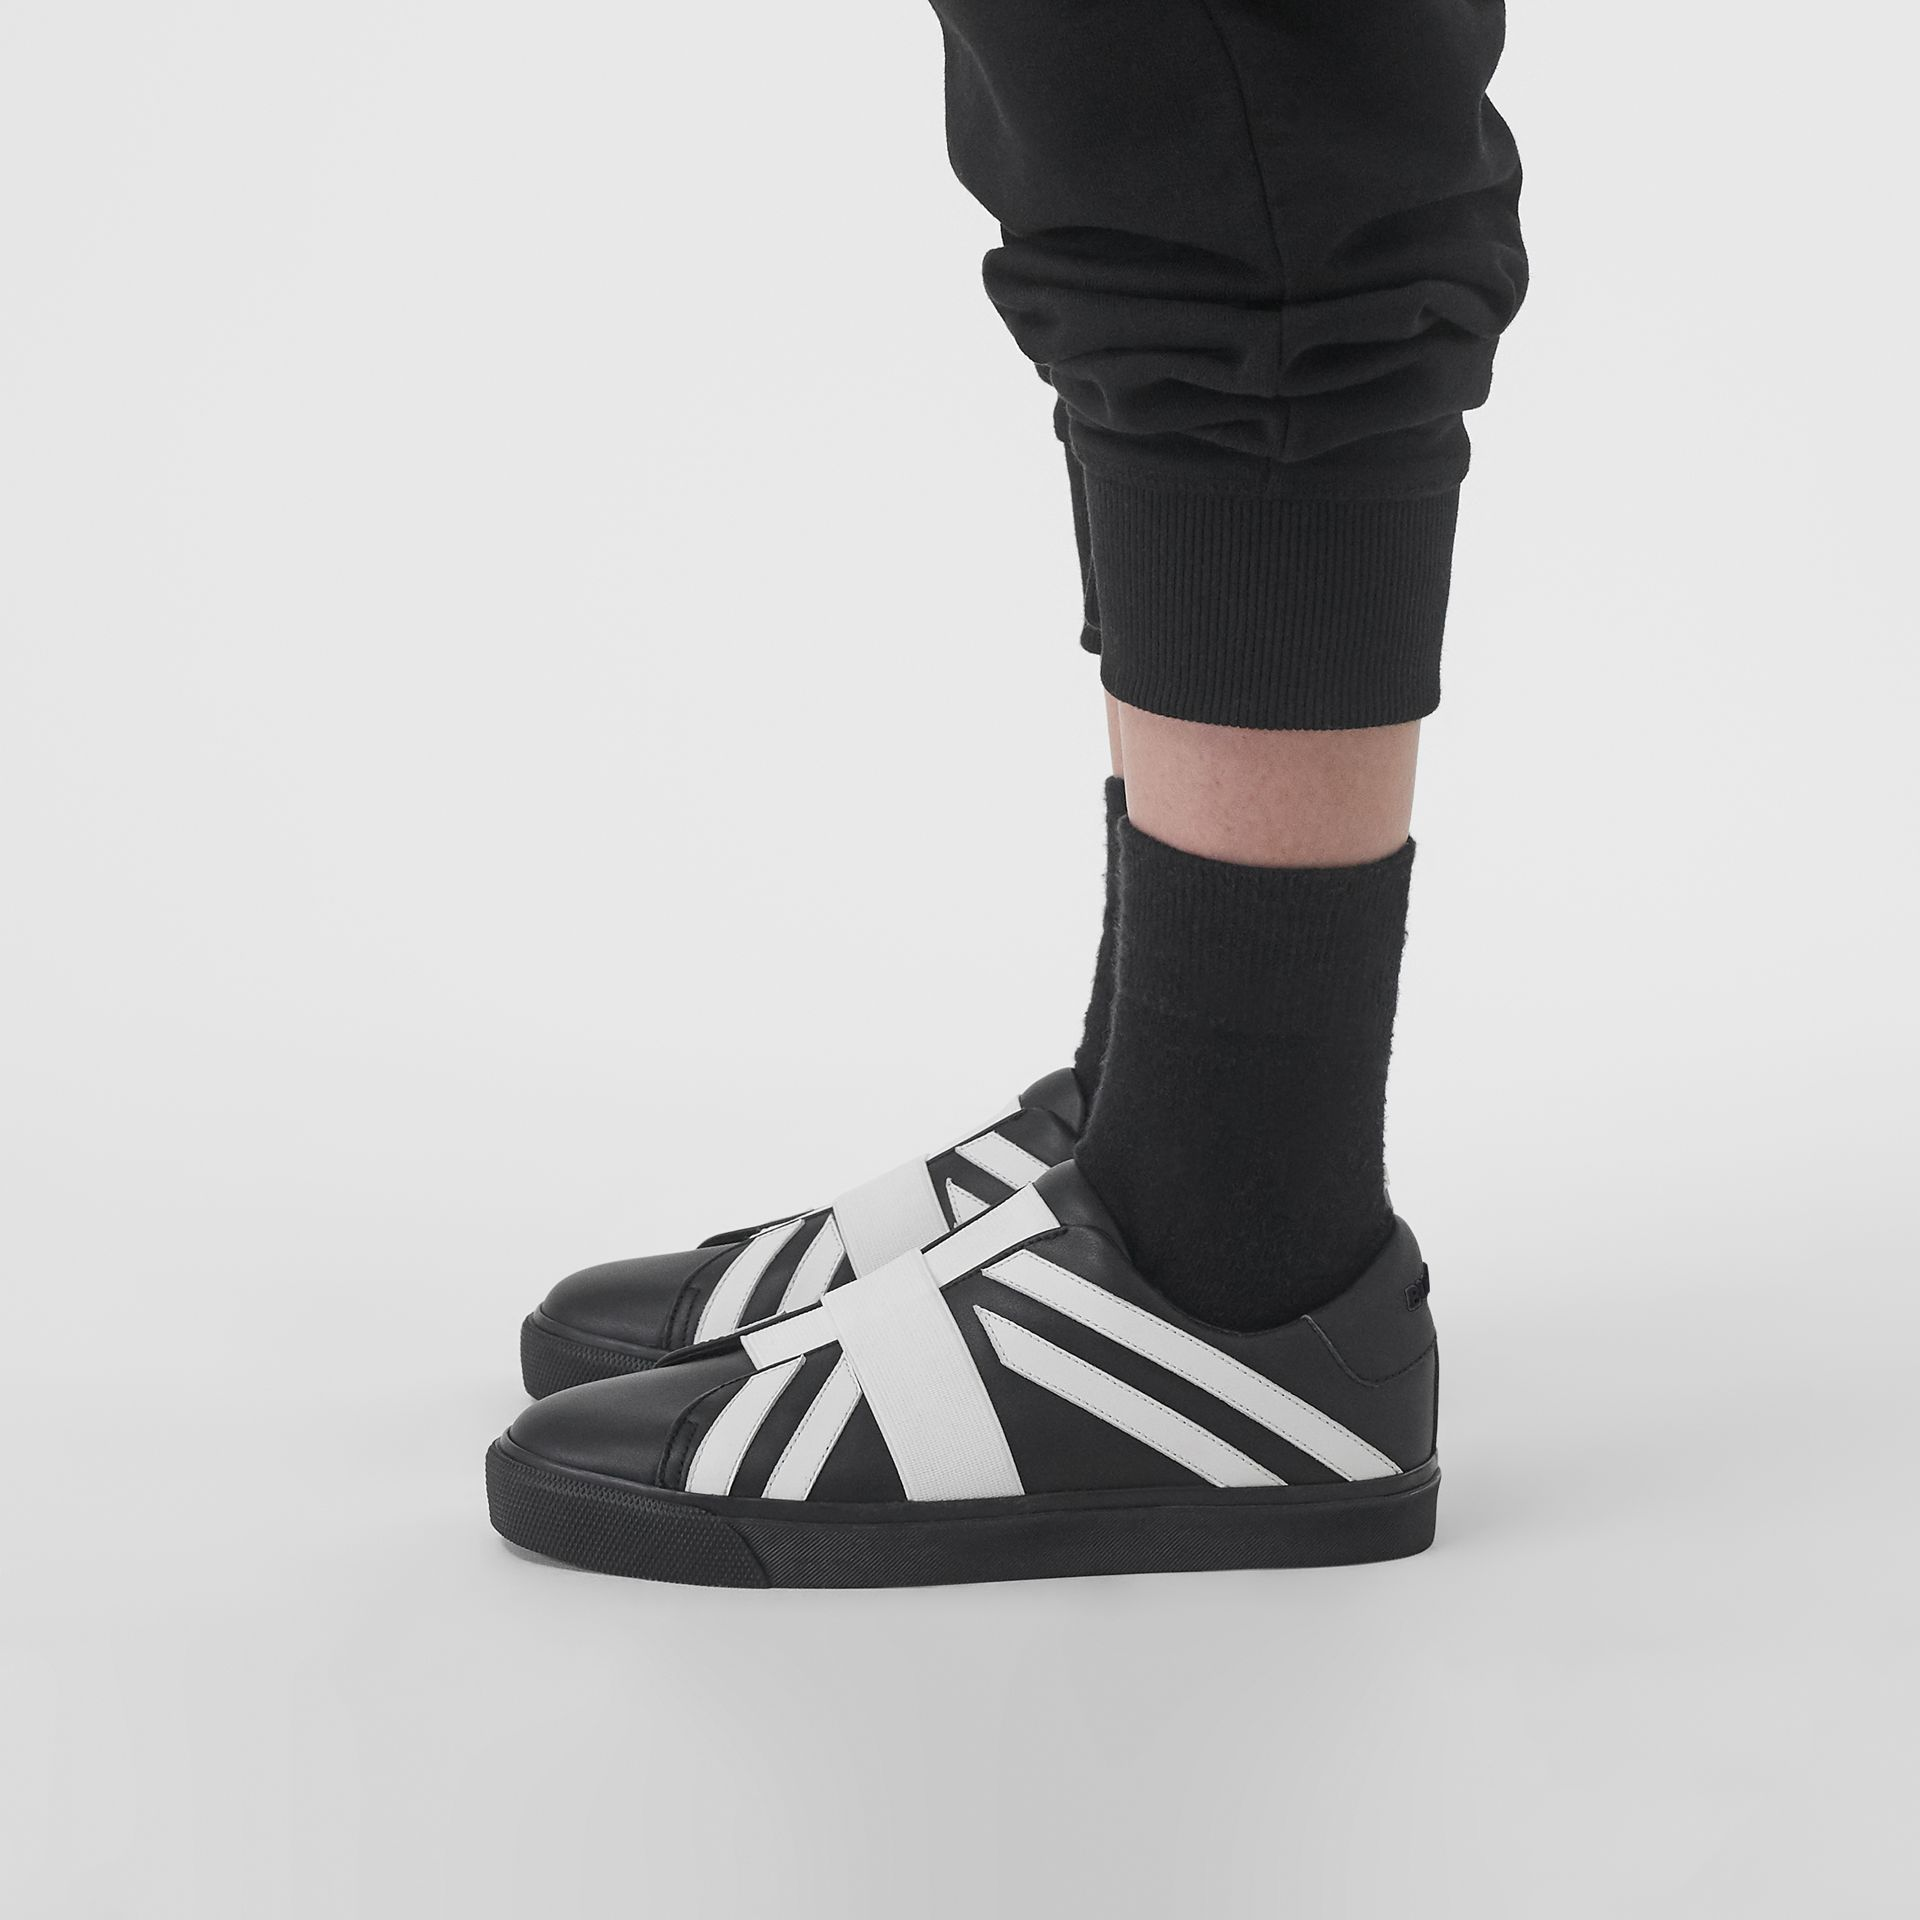 Union Jack Motif Slip-on Sneakers in Black/optic White - Women | Burberry Australia - gallery image 2